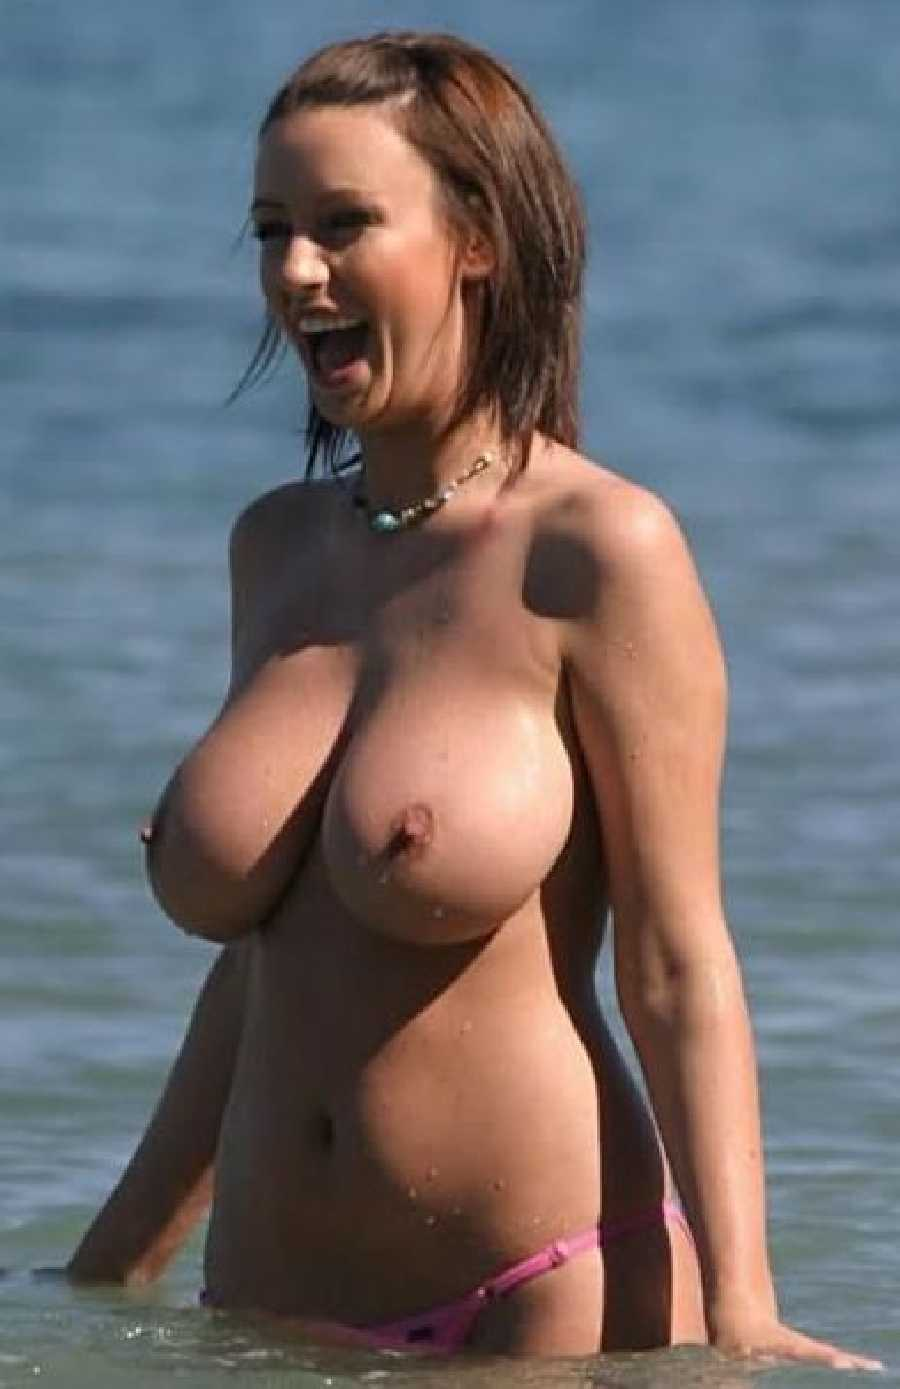 Pics of girls with nice tits